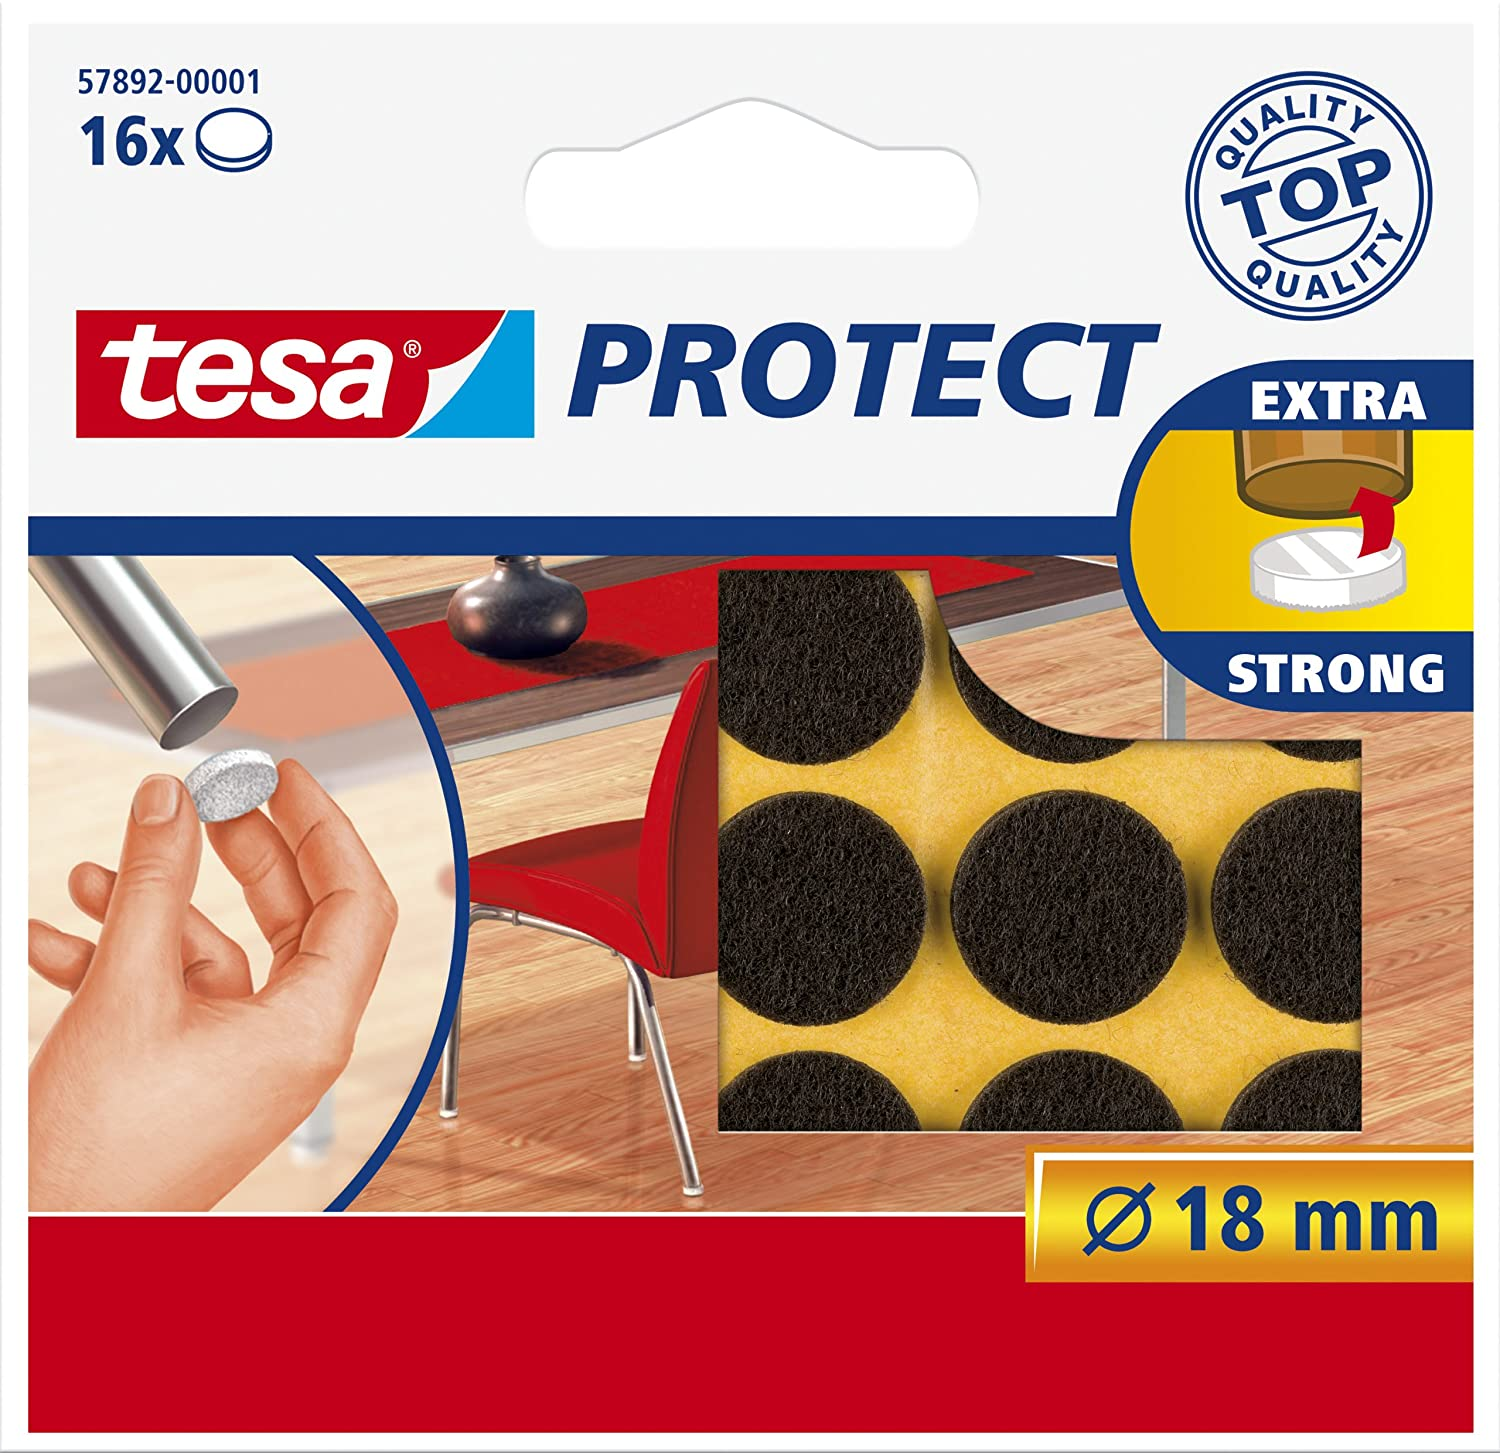 tesa UK Protect Anti Scratch Self Adhesive Felt, 26 mm Dia - White, 9 Pads 57894-00000-00